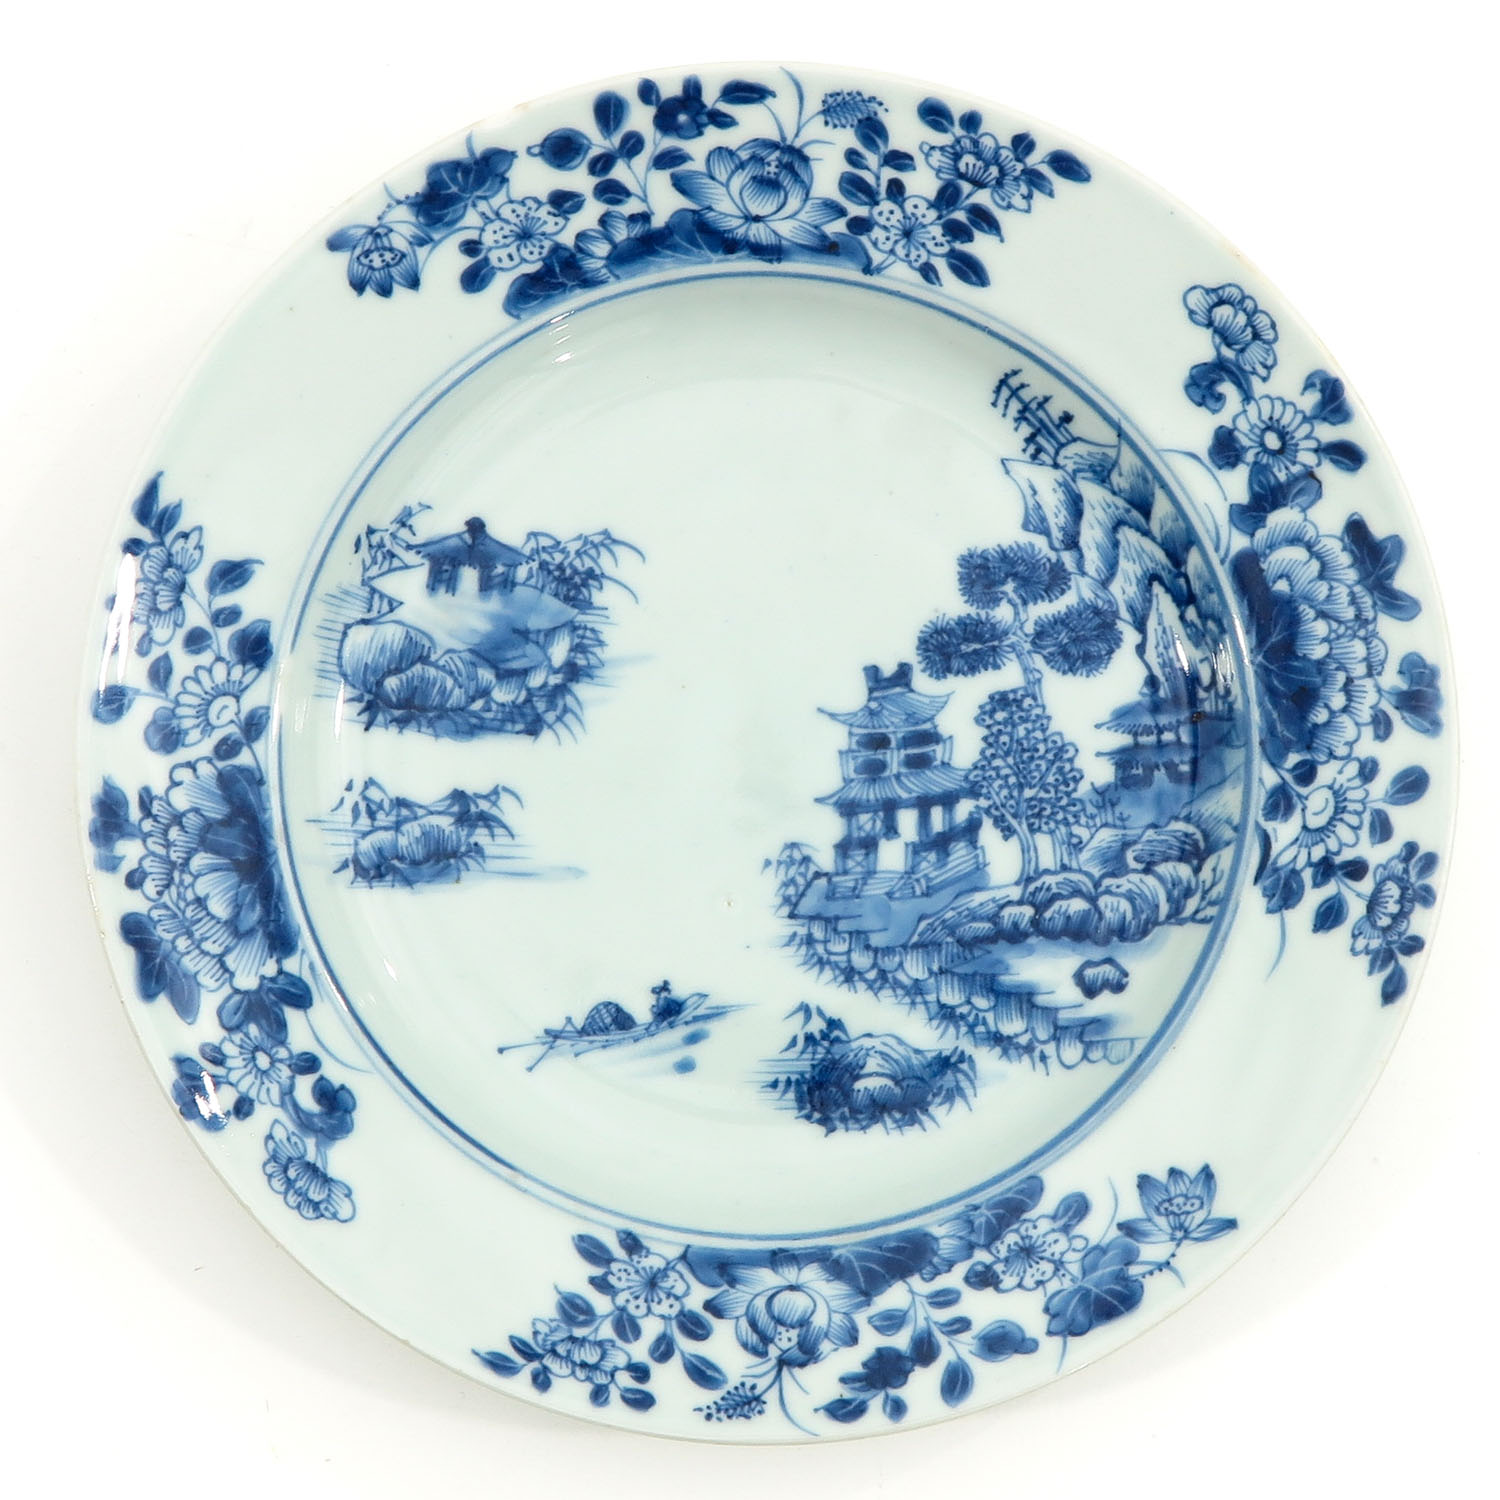 A Series of 3 Blue and White Plates - Image 7 of 10